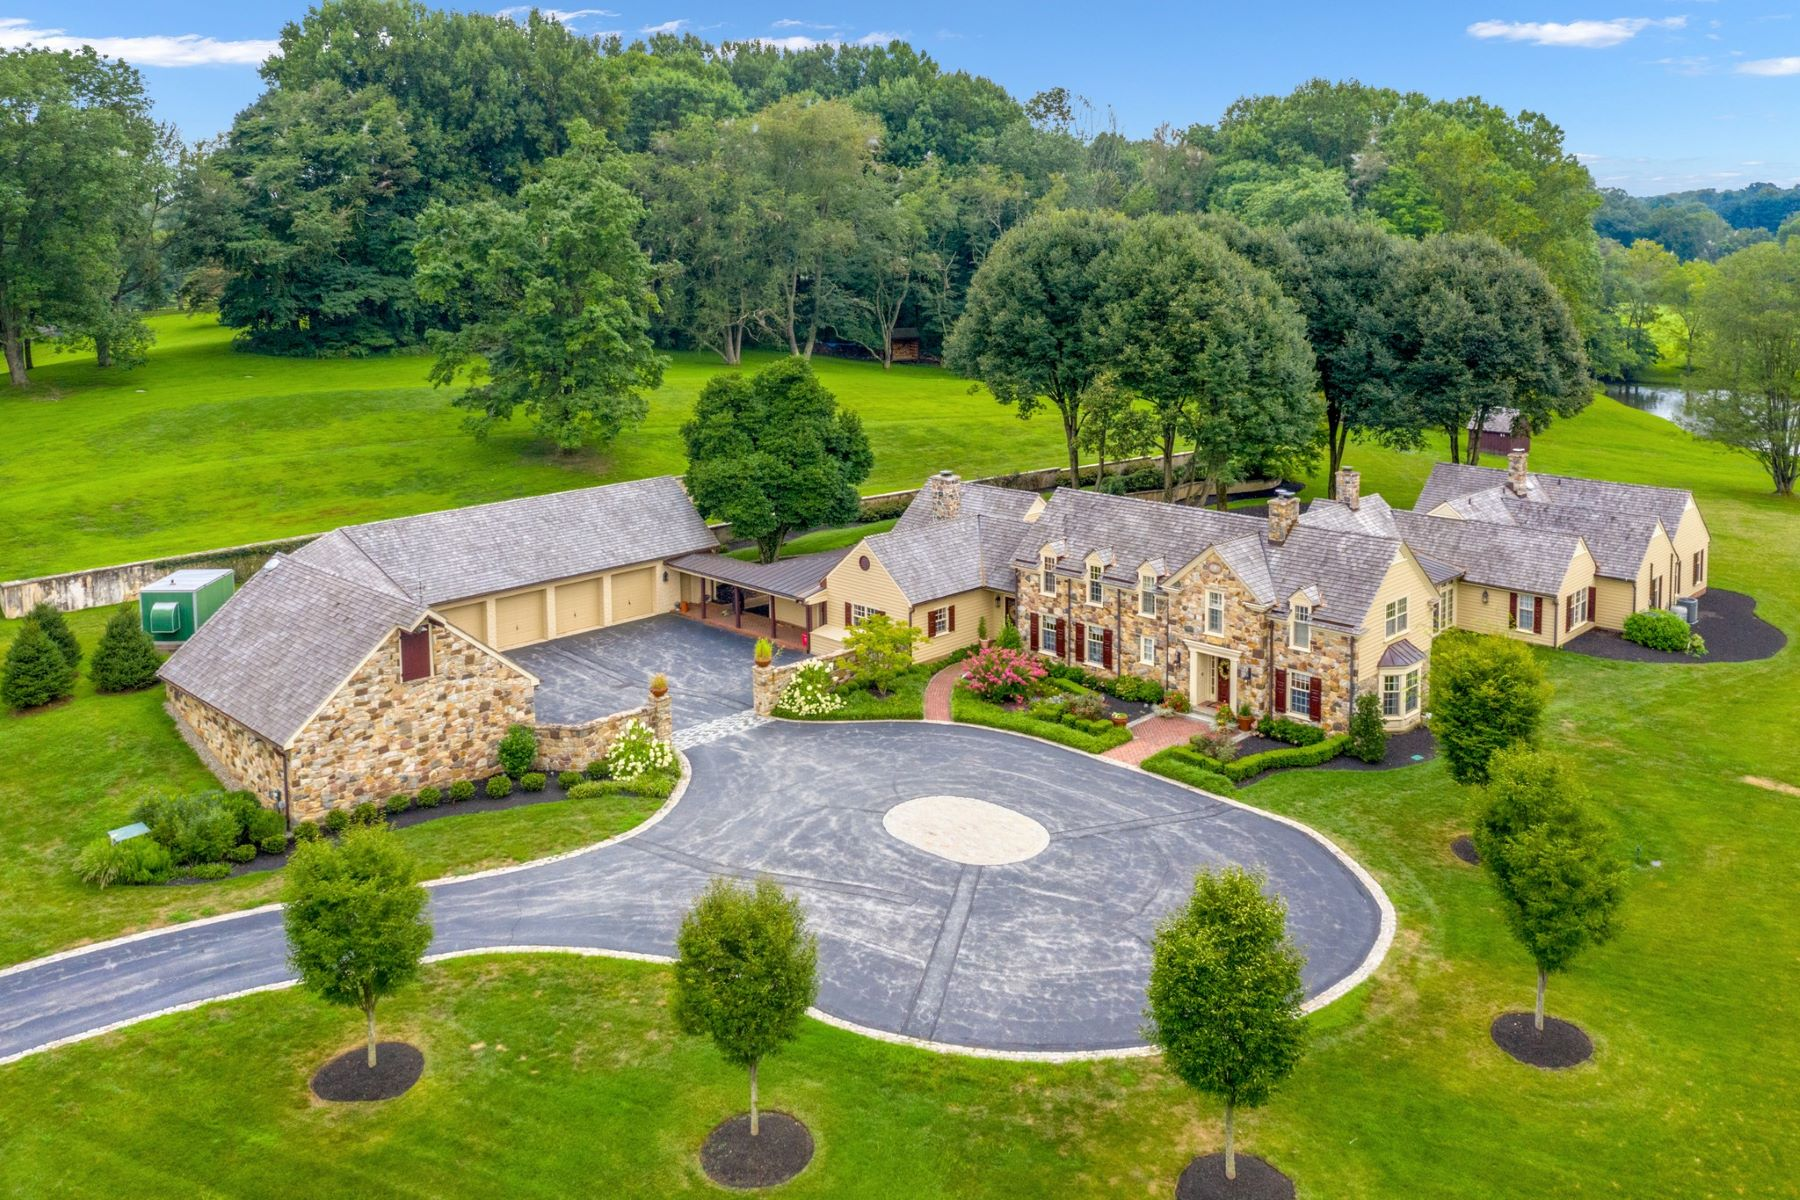 Single Family Homes voor Verkoop op 1151 Stockford Rd., Chadds Ford, PA 19317 1151 Stockford Road, Chadds Ford, Pennsylvania 19317 Verenigde Staten